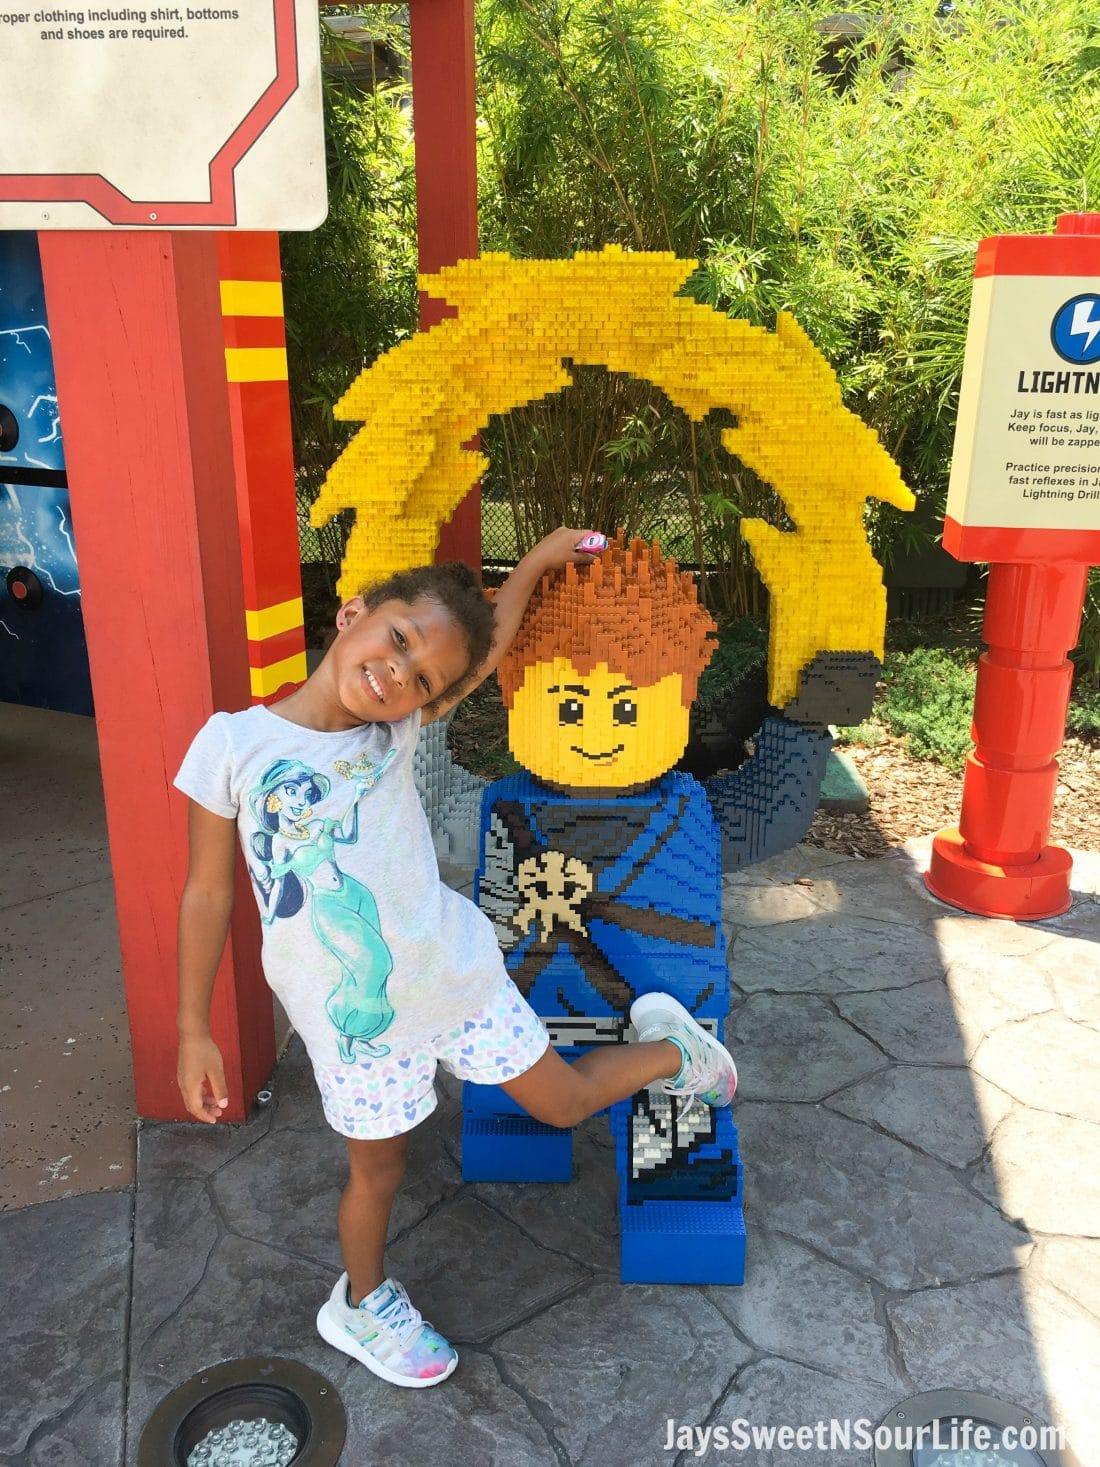 African American girl at Legoland Florida Ninjago World snapping a Character Photo. Spend your summer building memories at Legoland in Florida. There is something for the whole family to enjoy at this wonderful Theme Park.